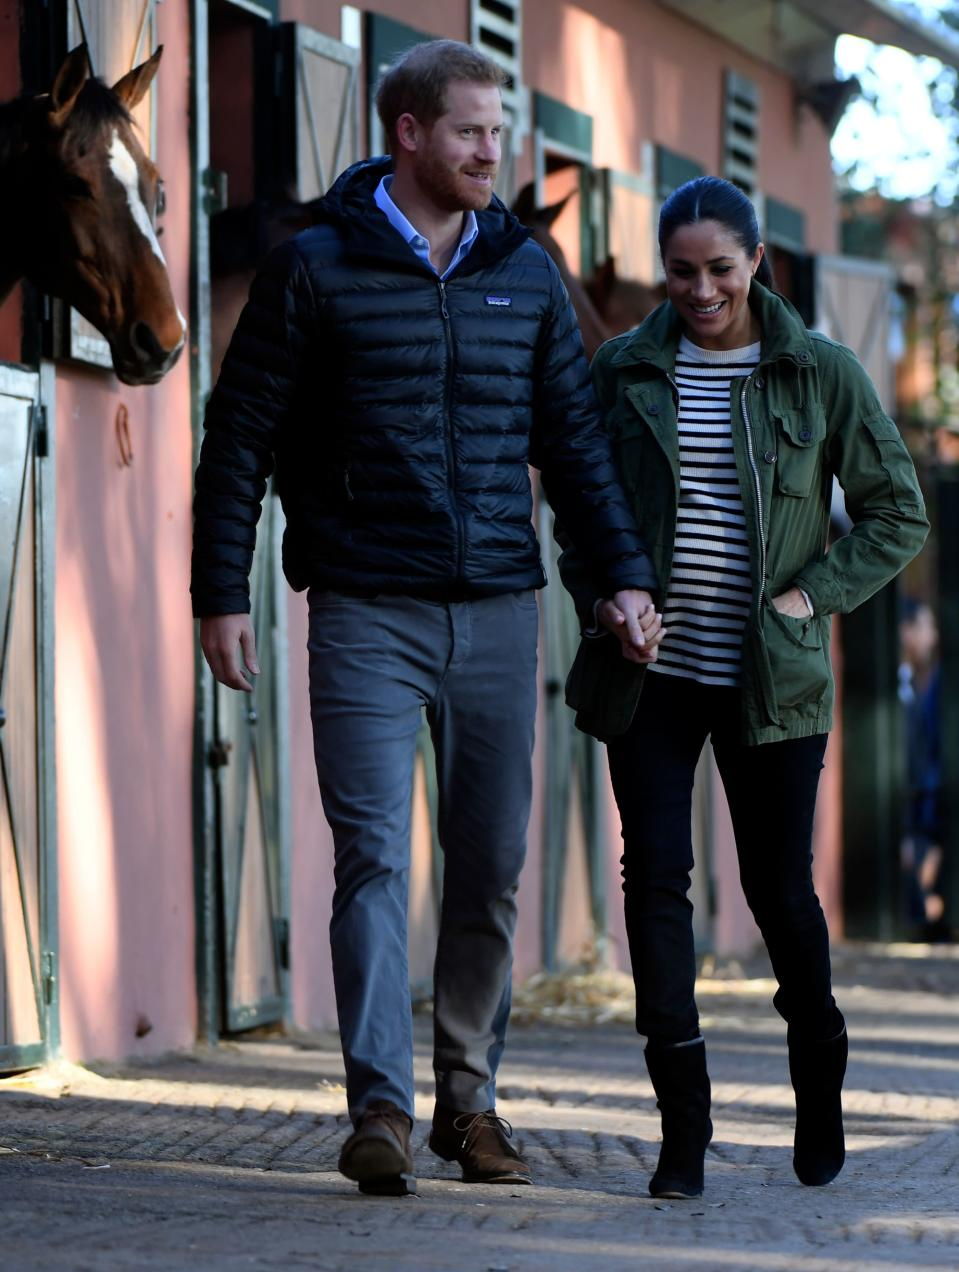 """<p>At the Moroccan Royal Federation of Equestrian Sports in Rabat, Meghan donned her trusty khaki <a rel=""""nofollow noopener"""" href=""""https://www.jcrew.com/uk/p/E0945"""" target=""""_blank"""" data-ylk=""""slk:J. Crew 'Field Mechanic' jacket"""" class=""""link rapid-noclick-resp"""">J. Crew 'Field Mechanic' jacket</a> with a striped sweater by French label Equipment, <a rel=""""nofollow noopener"""" href=""""https://www.shopbop.com/maternity-skinny-jeans-rag-bone/vp/v=1/1583789317.htm?fm=search-viewall-shopbysize&os=false"""" target=""""_blank"""" data-ylk=""""slk:Rag & Bone skinny maternity jeans"""" class=""""link rapid-noclick-resp"""">Rag & Bone skinny maternity jeans</a> and <a rel=""""nofollow noopener"""" href=""""https://www.saksfifthavenue.com/stuart-weitzman-brooks-suede-booties/product/0400098880069?ranMID=37410&ranEAID=0RpXOIXA500&ranSiteID=0RpXOIXA500-iO3_3OiVQ9vCW041Q7wYNw&site_refer=AFF001&mid=37410&siteID=0RpXOIXA500-iO3_3OiVQ9vCW041Q7wYNw&ranMID=37410&ranEAID=QFGLnEolOWg&ranSiteID=QFGLnEolOWg-YClXUJnqTO6CYl13MTopfA&site_refer=AFF001&mid=37410&siteID=QFGLnEolOWg-YClXUJnqTO6CYl13MTopfA"""" target=""""_blank"""" data-ylk=""""slk:Stuart Weitzman heeled boots"""" class=""""link rapid-noclick-resp"""">Stuart Weitzman heeled boots</a>. [Photo: Getty] </p>"""